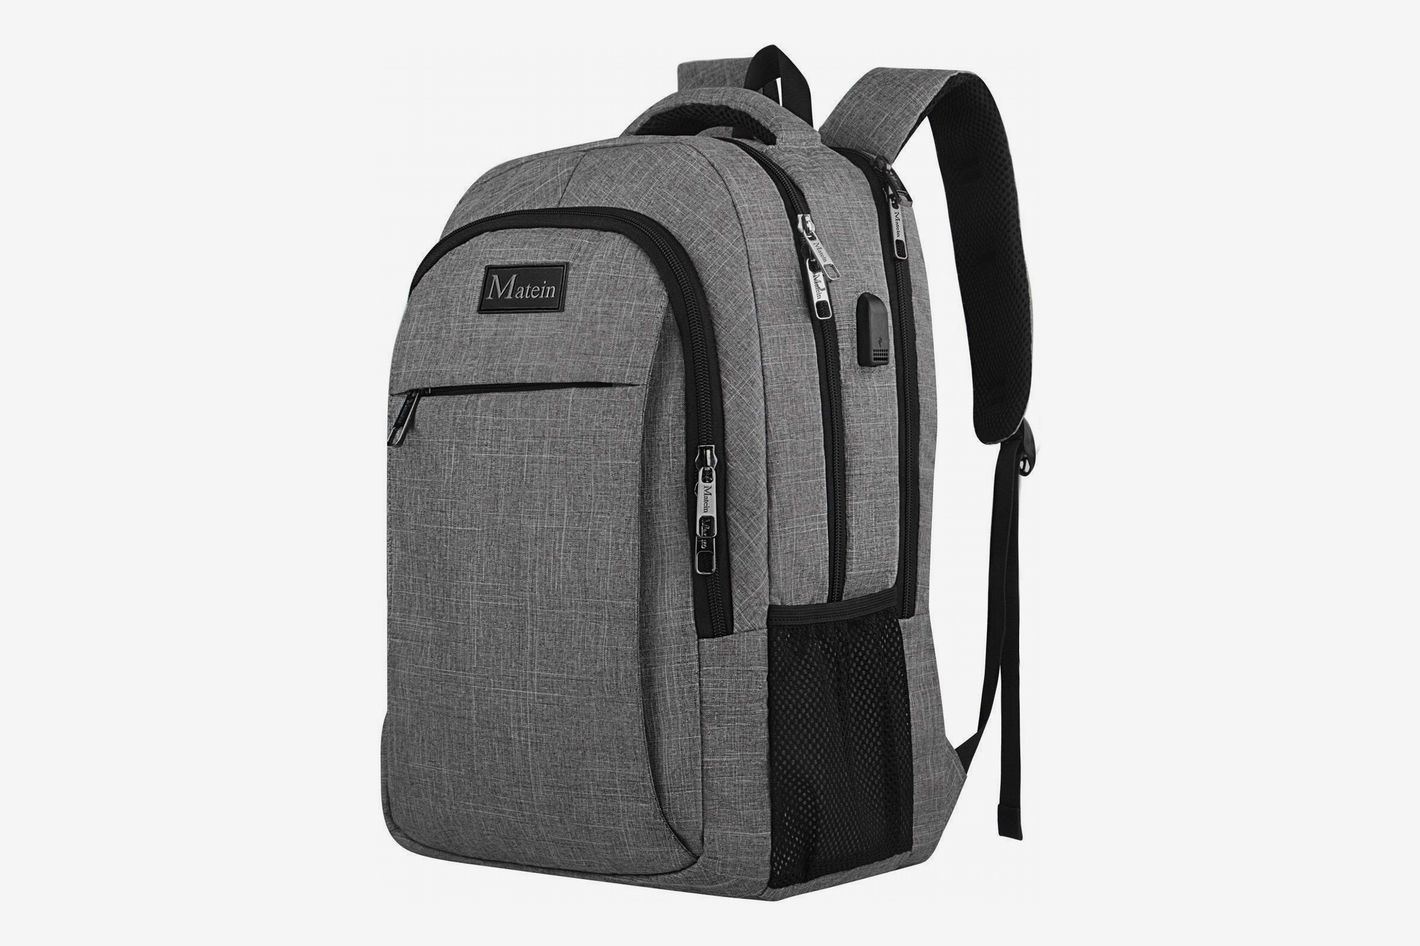 b858124e56a4 Matein Travel Laptop Backpack